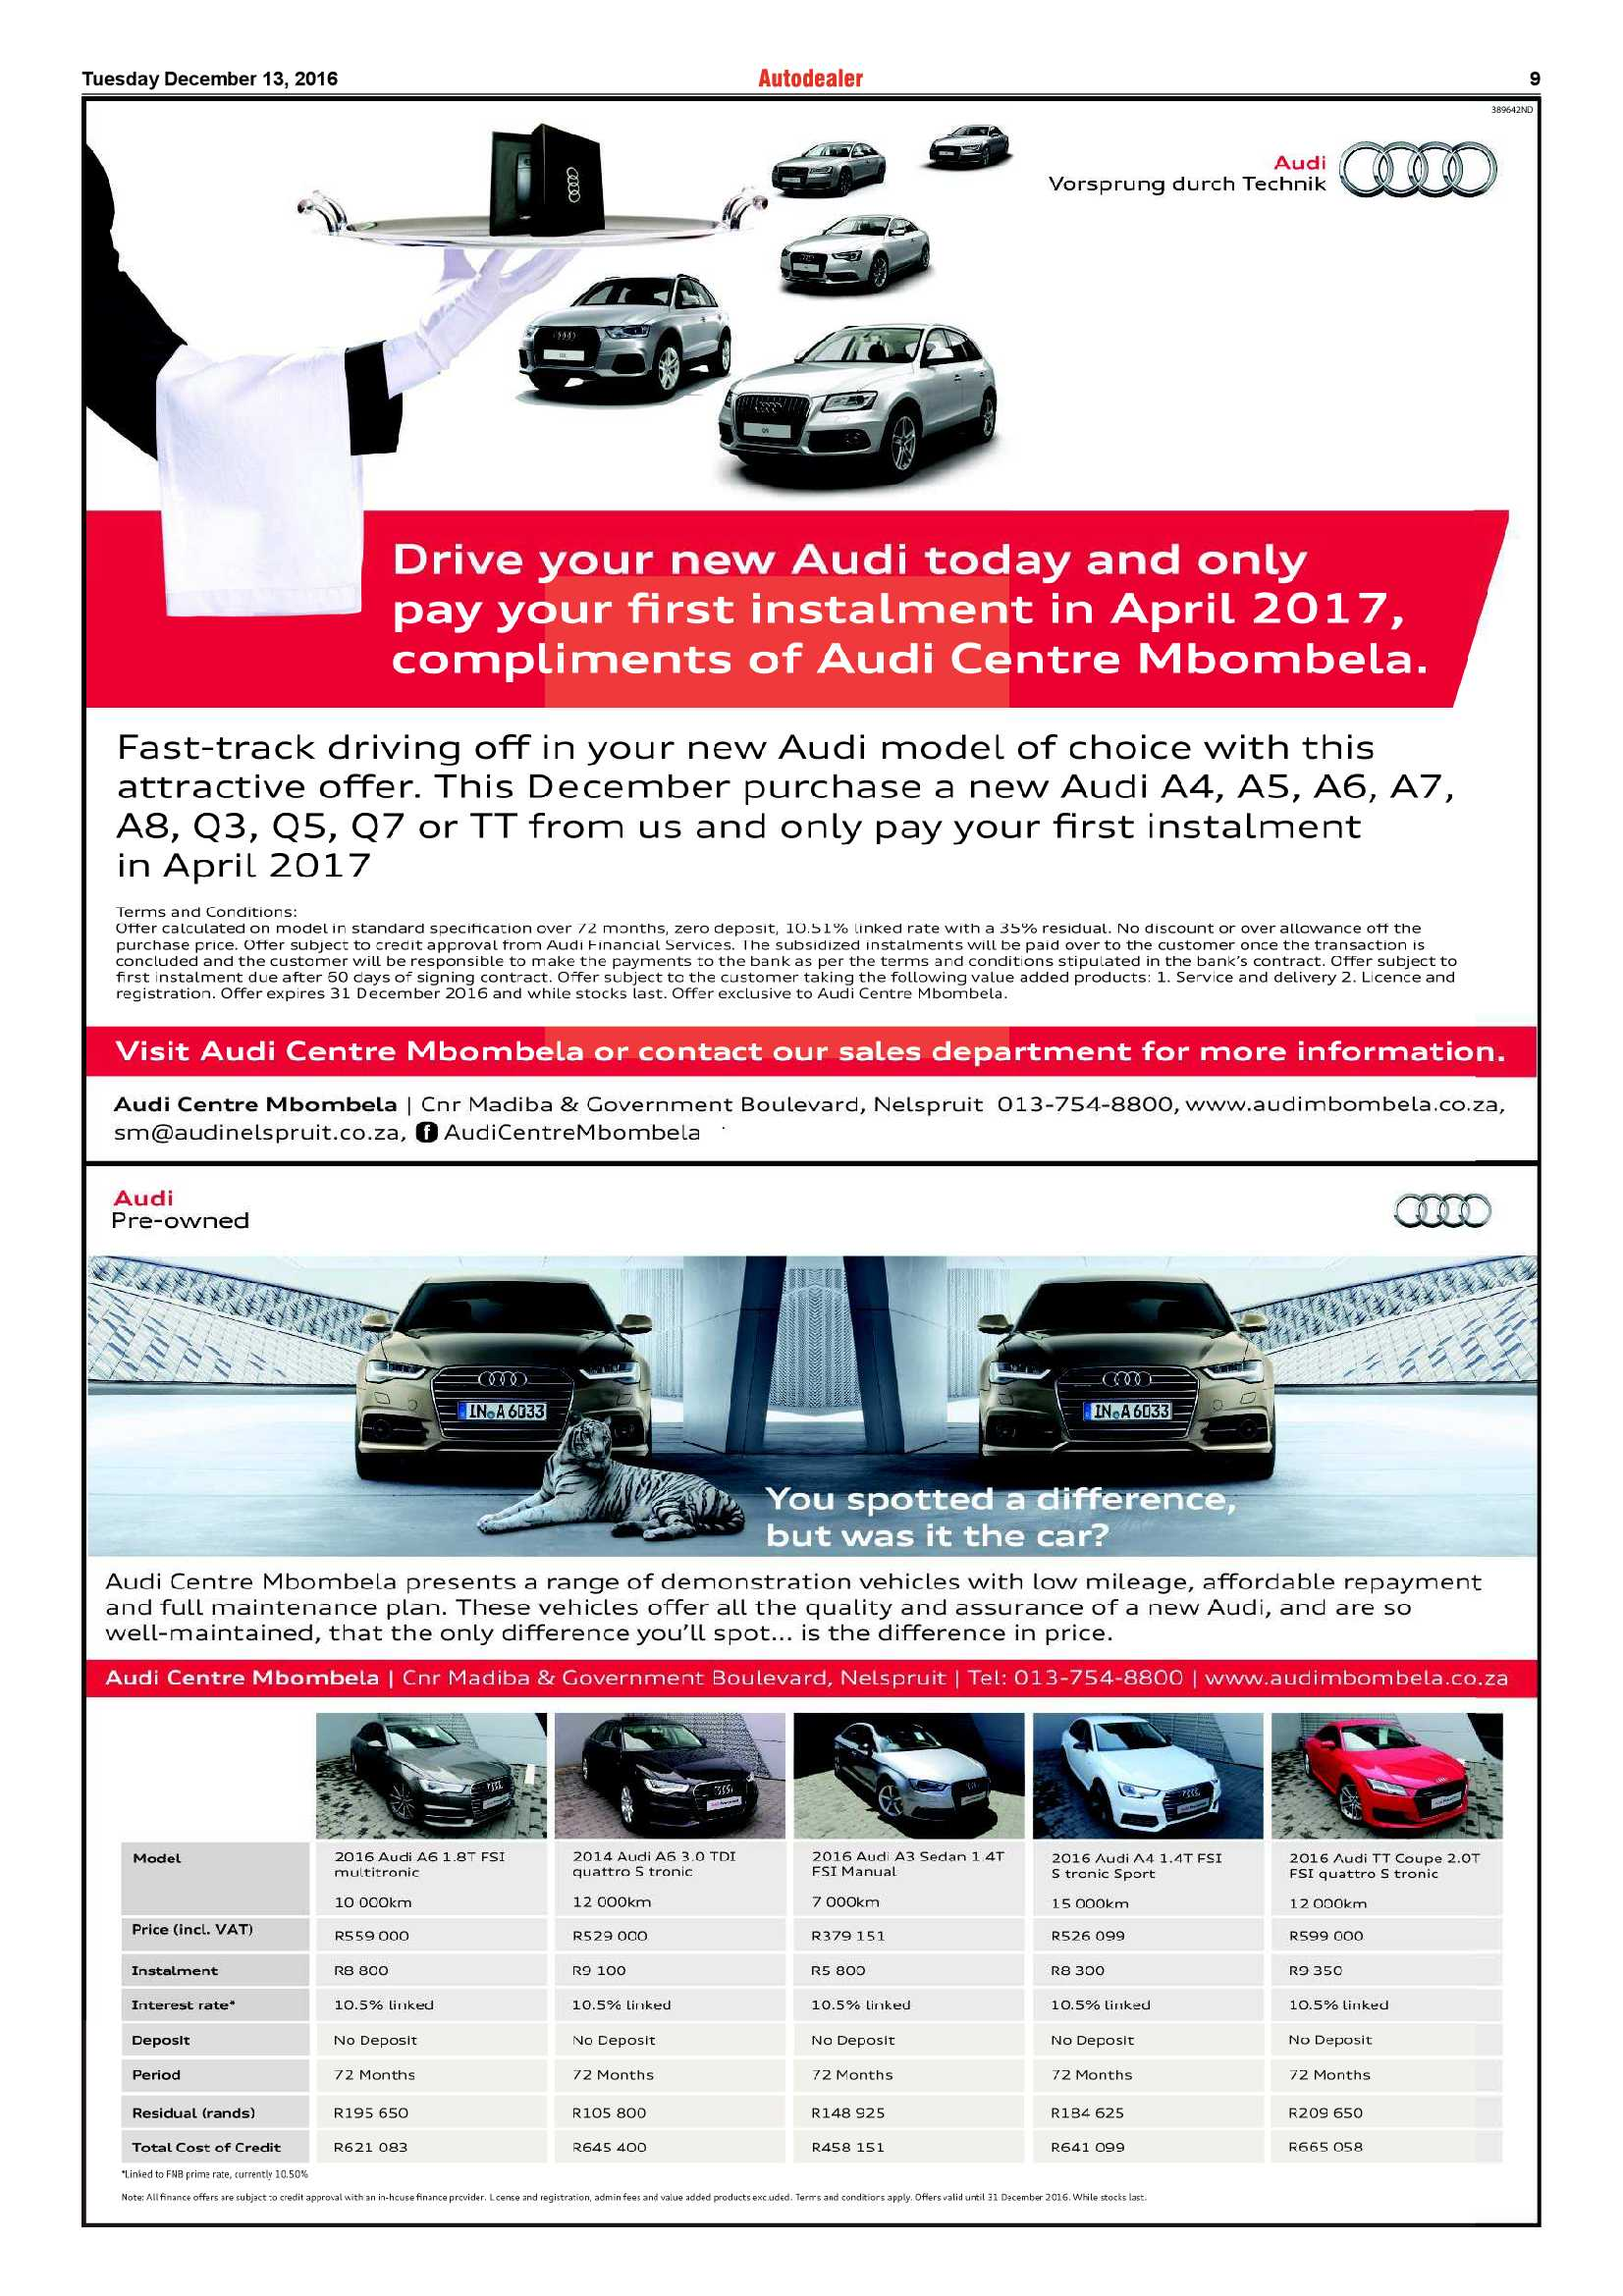 autodealer-13-december-2016-epapers-page-8